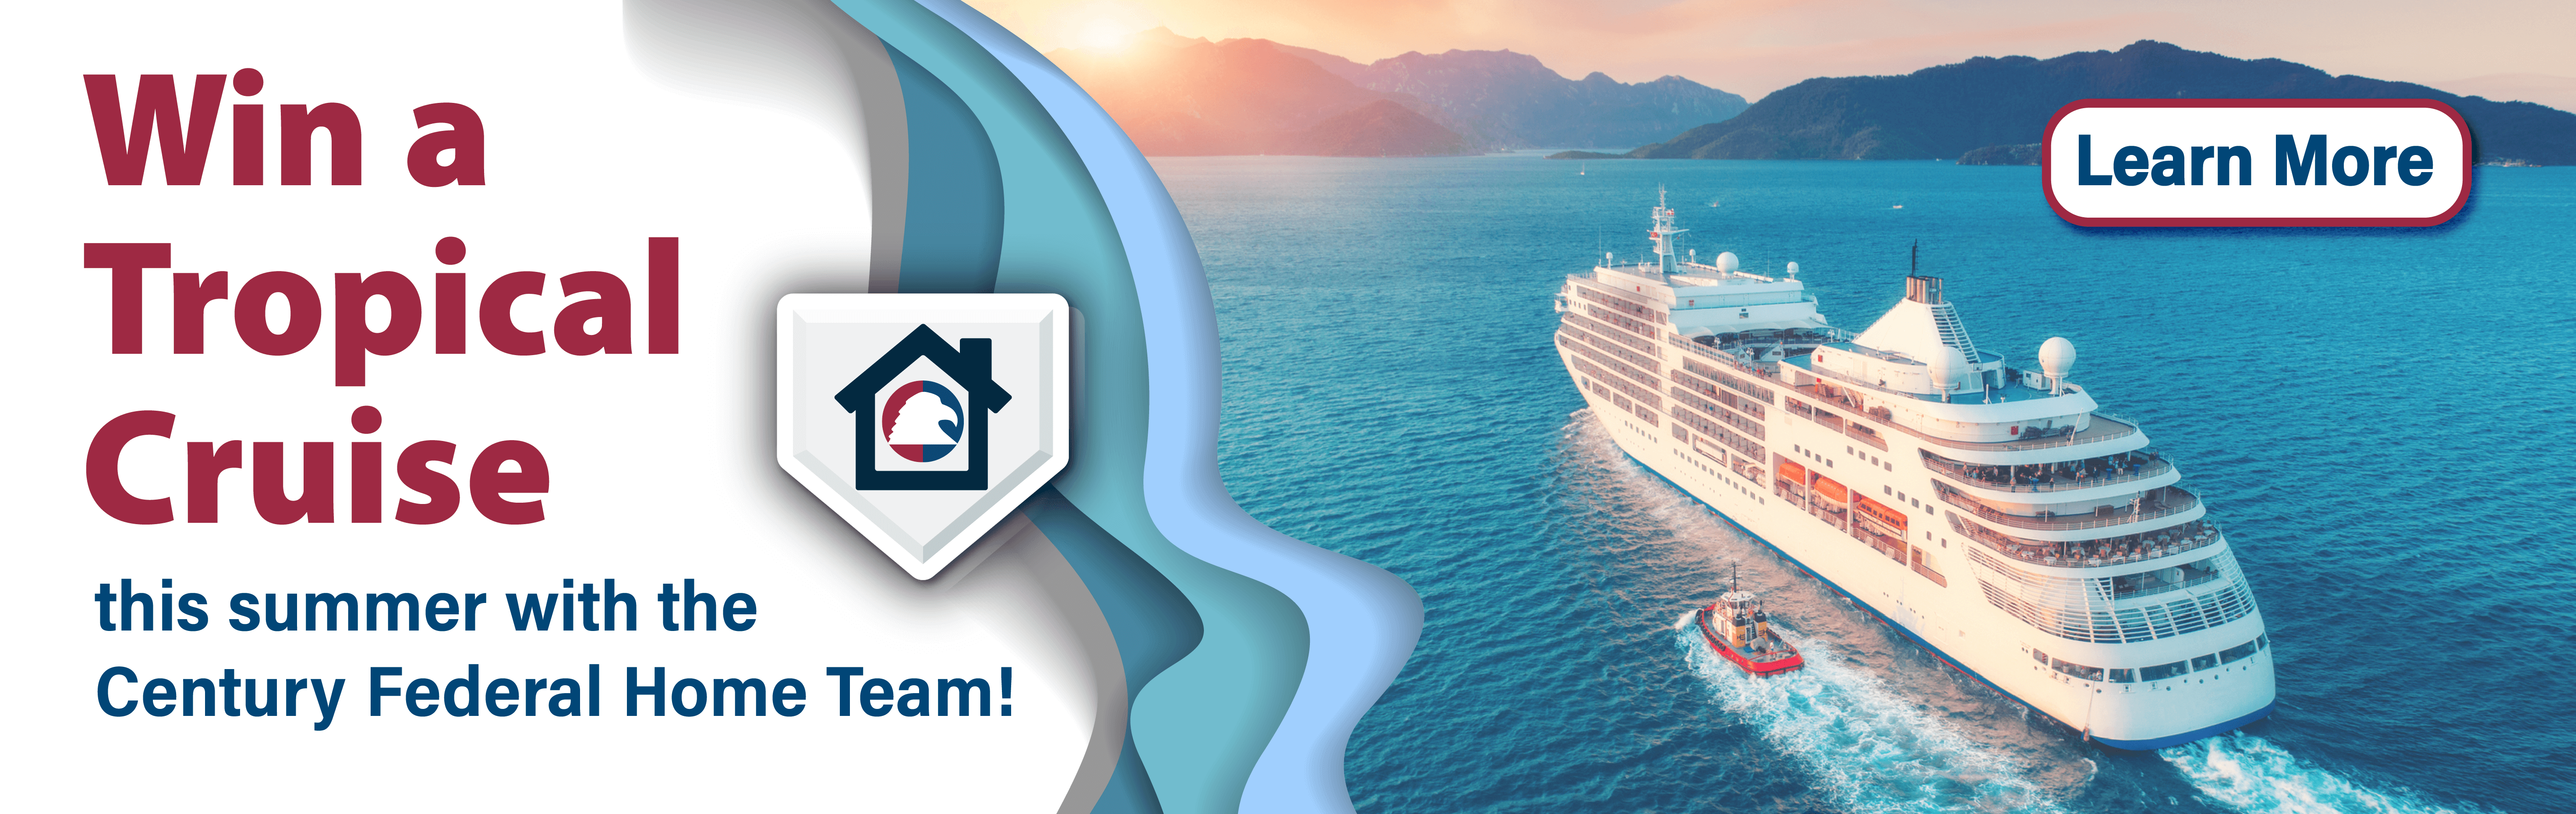 Home Team Cruise Giveaway